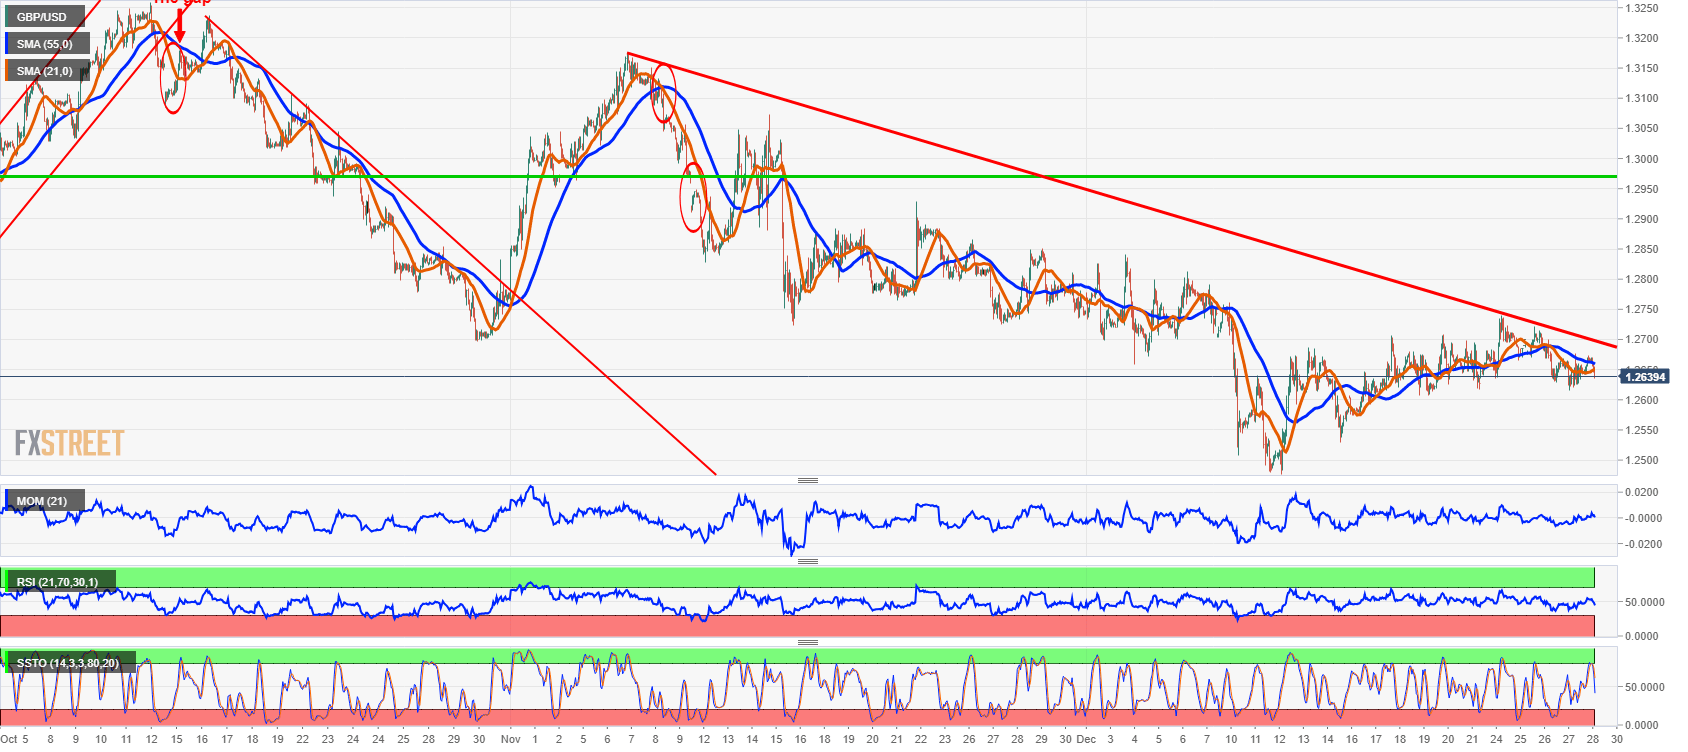 gbpusd_1-hour_chart-636815870976095714.png